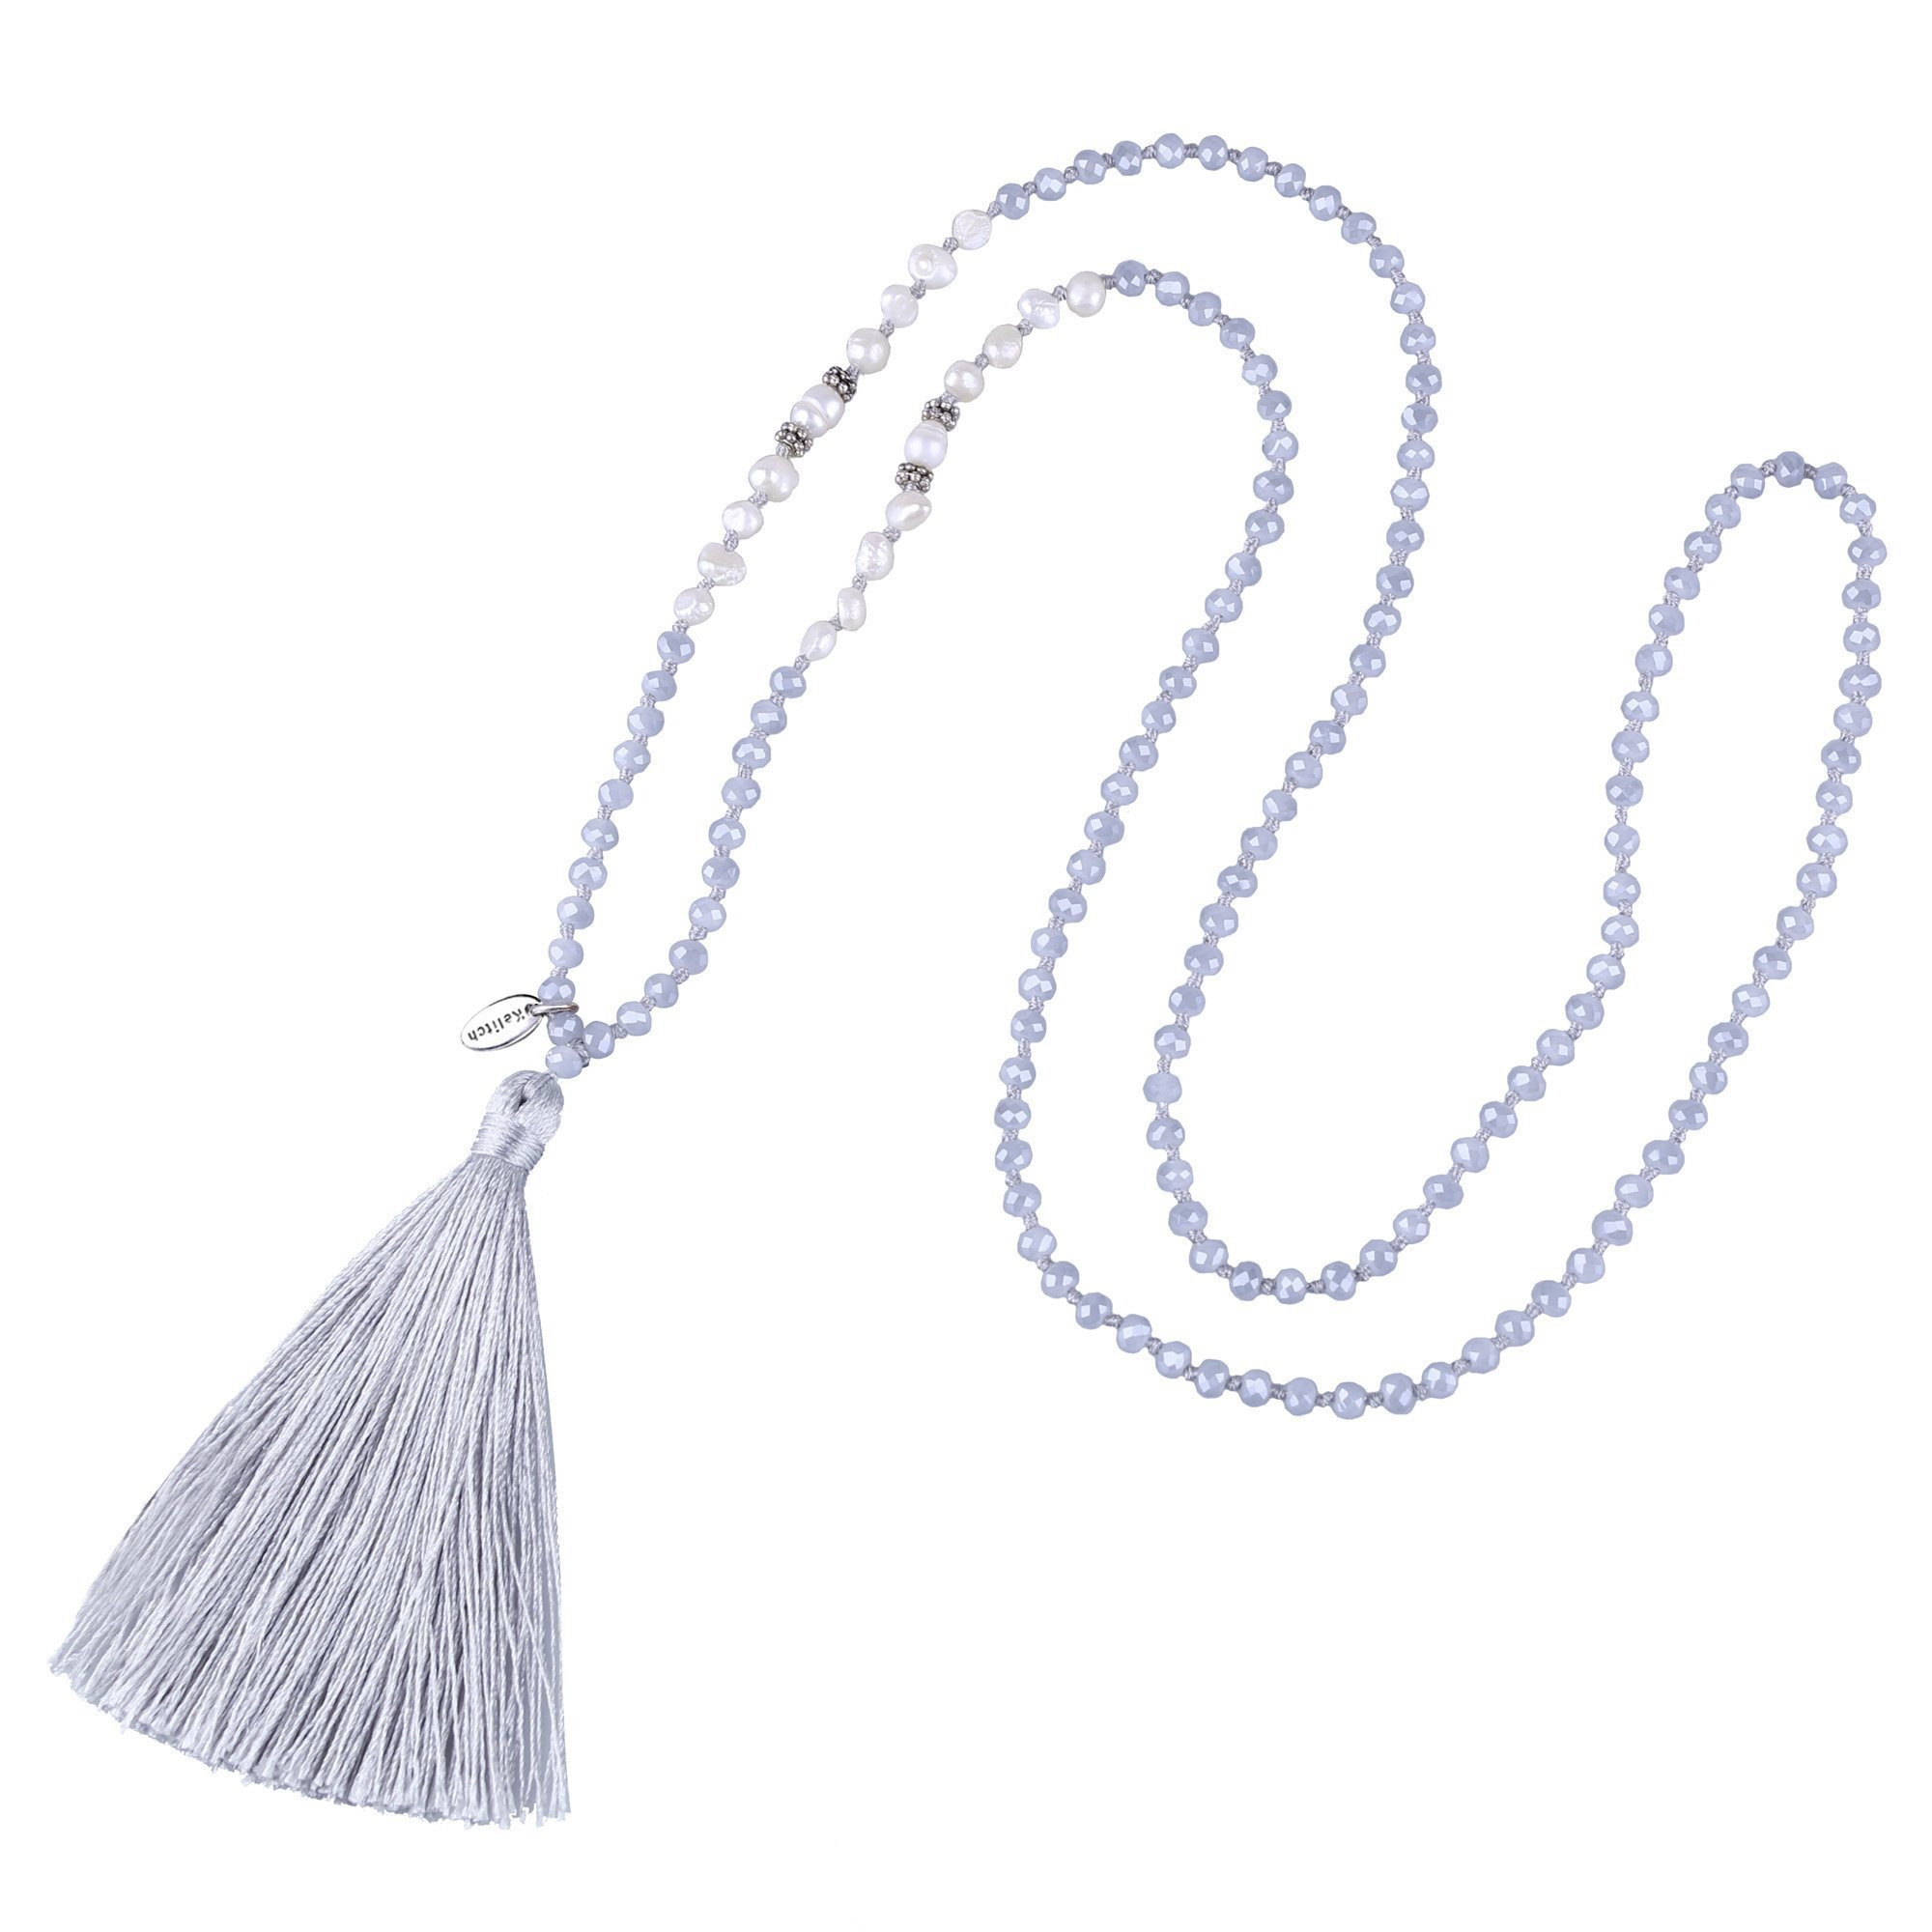 KELITCH Long Tassel Necklace Handmade Shell Pearl Crystal Beads Necklace for Women, Grey